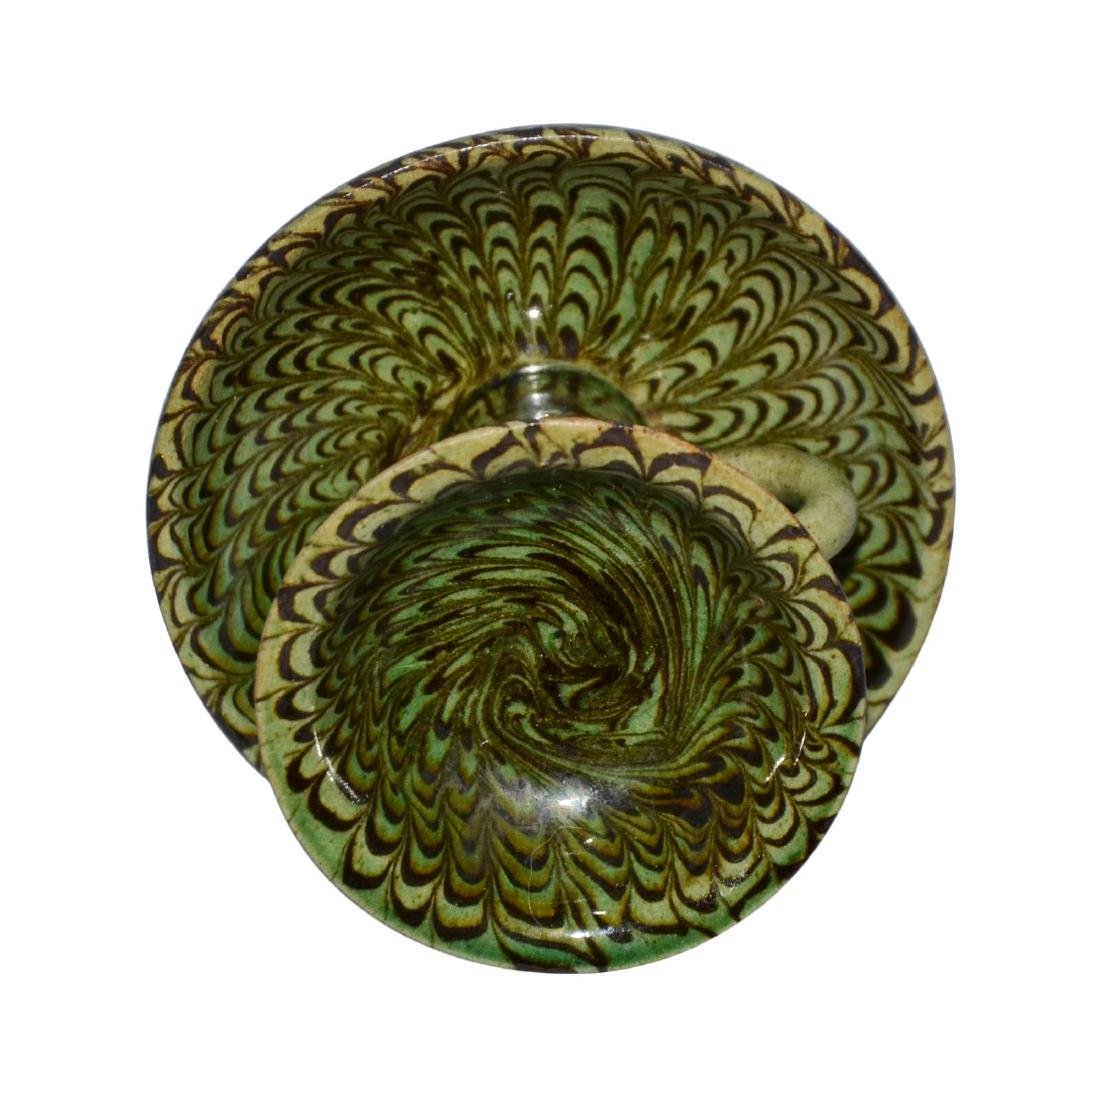 Song, A Rare Green-Glazed Marbled Pottery Lamp with - 6